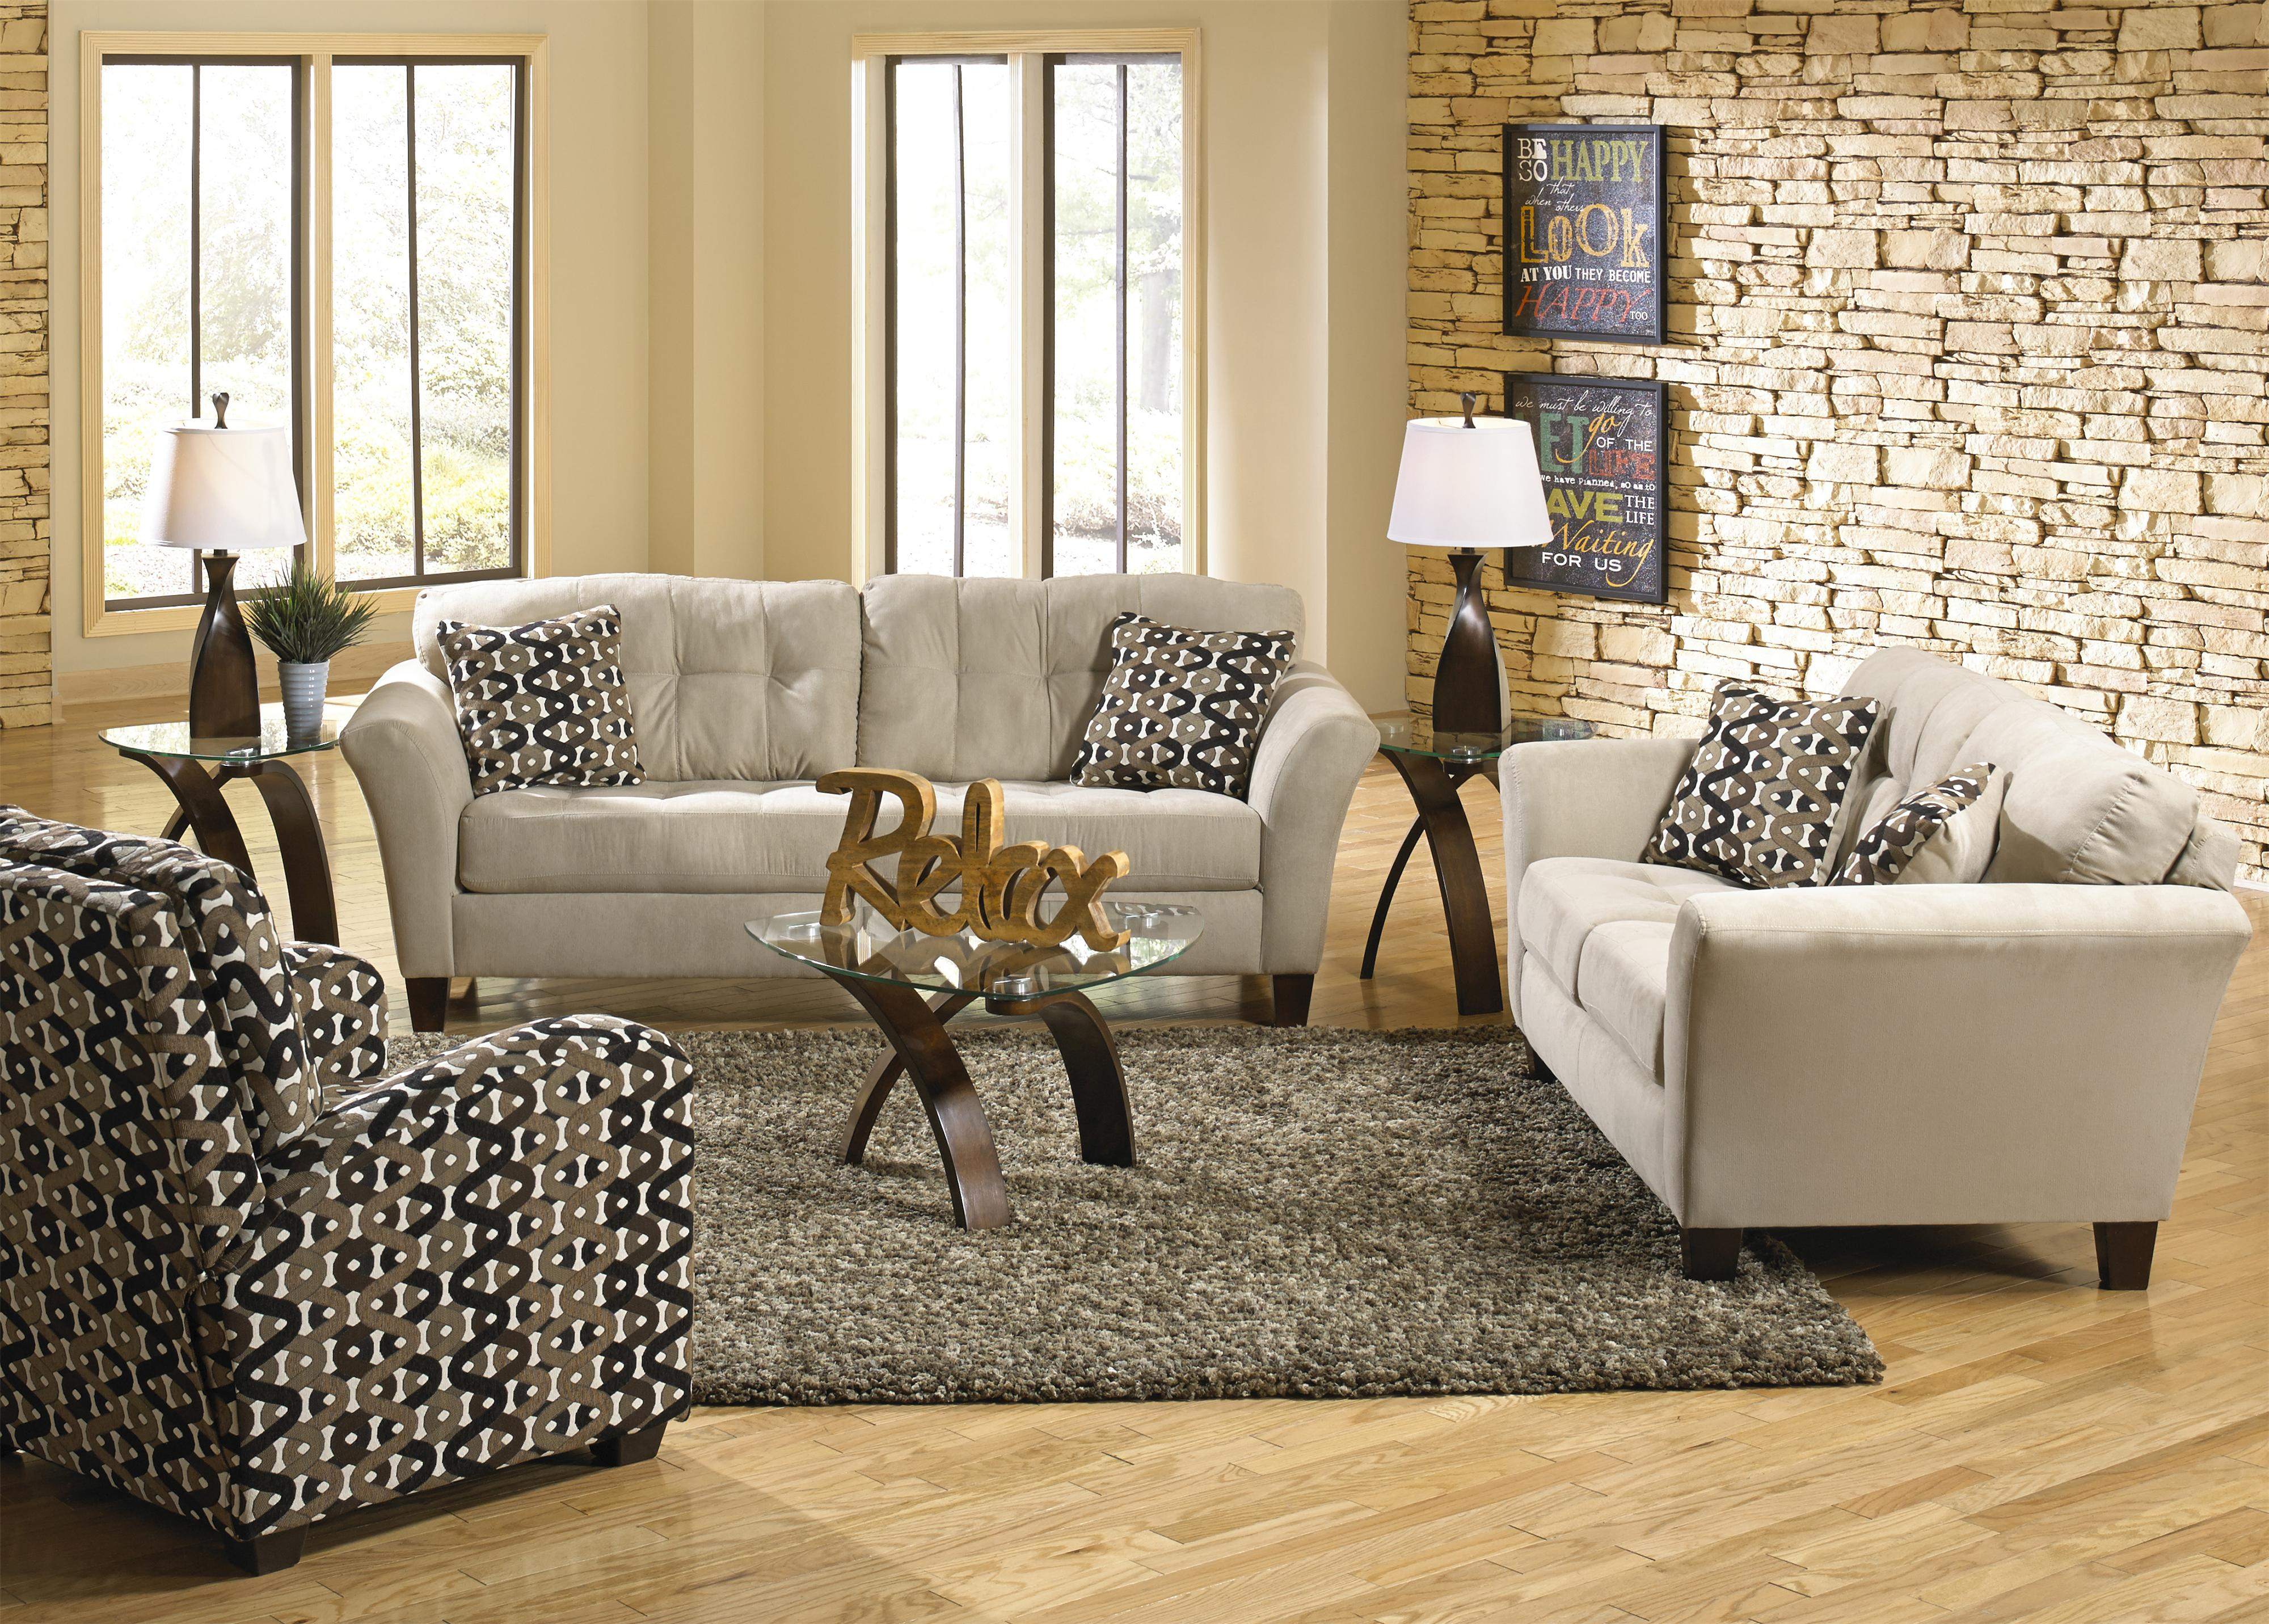 Gentil By Jackson Furniture. Stationary Living Room Group